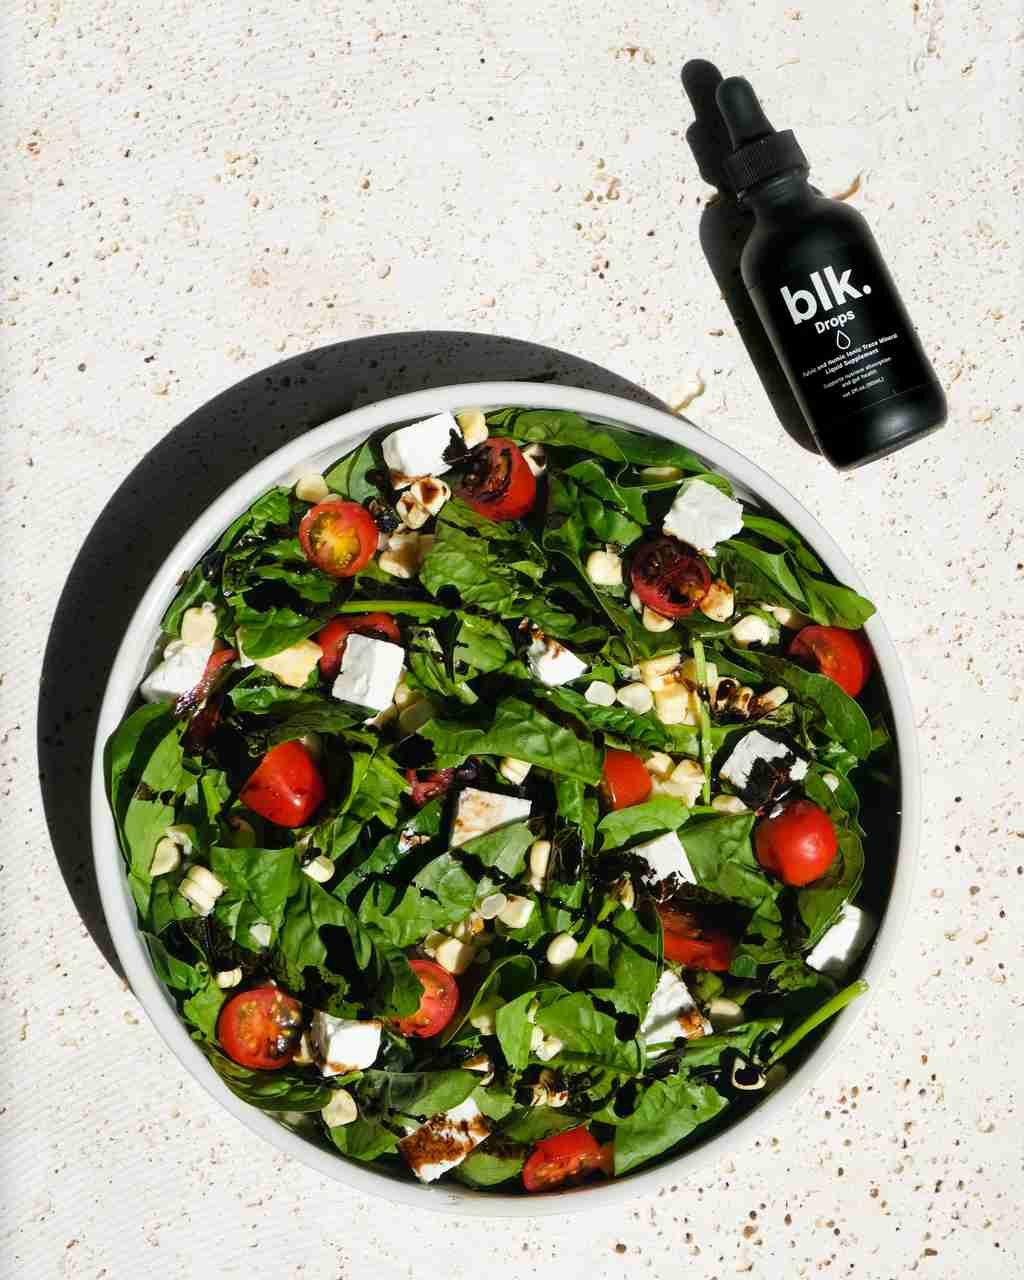 Spinach Summer Salad Recipe made with blk. Drops